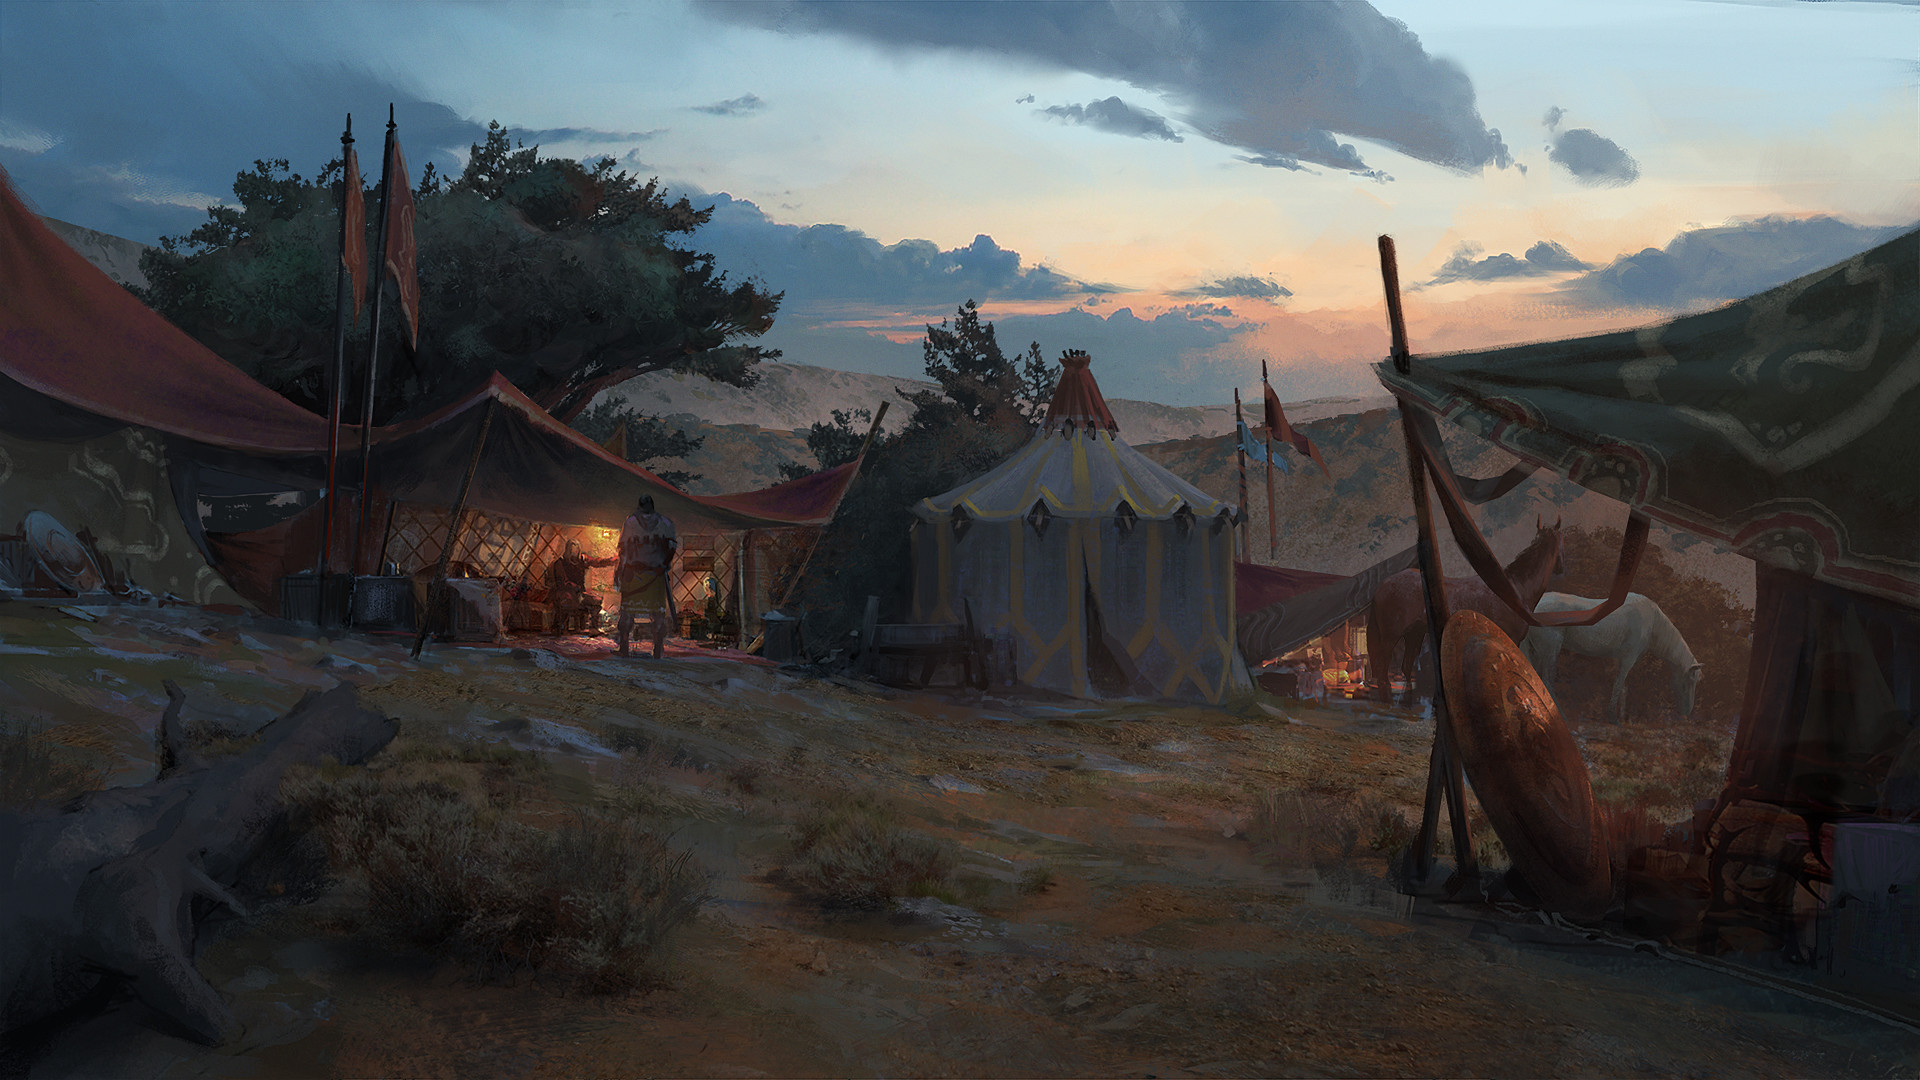 Klaus pillon camp dusk savannah final